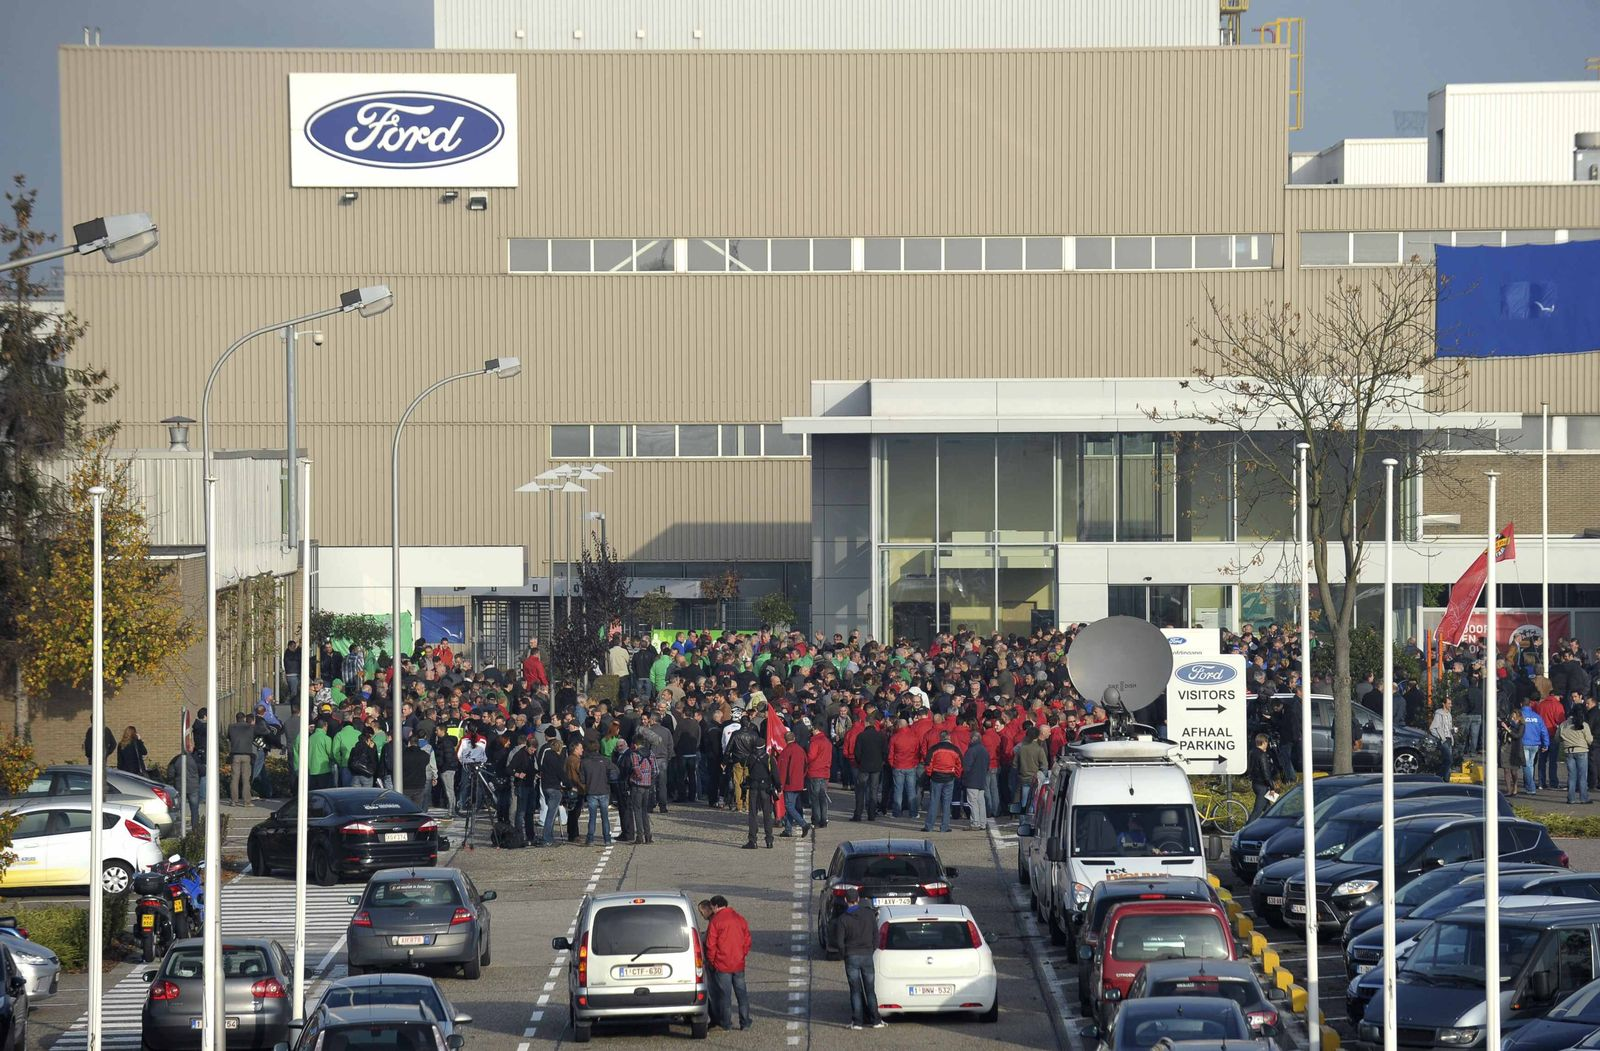 FORD-GENK/